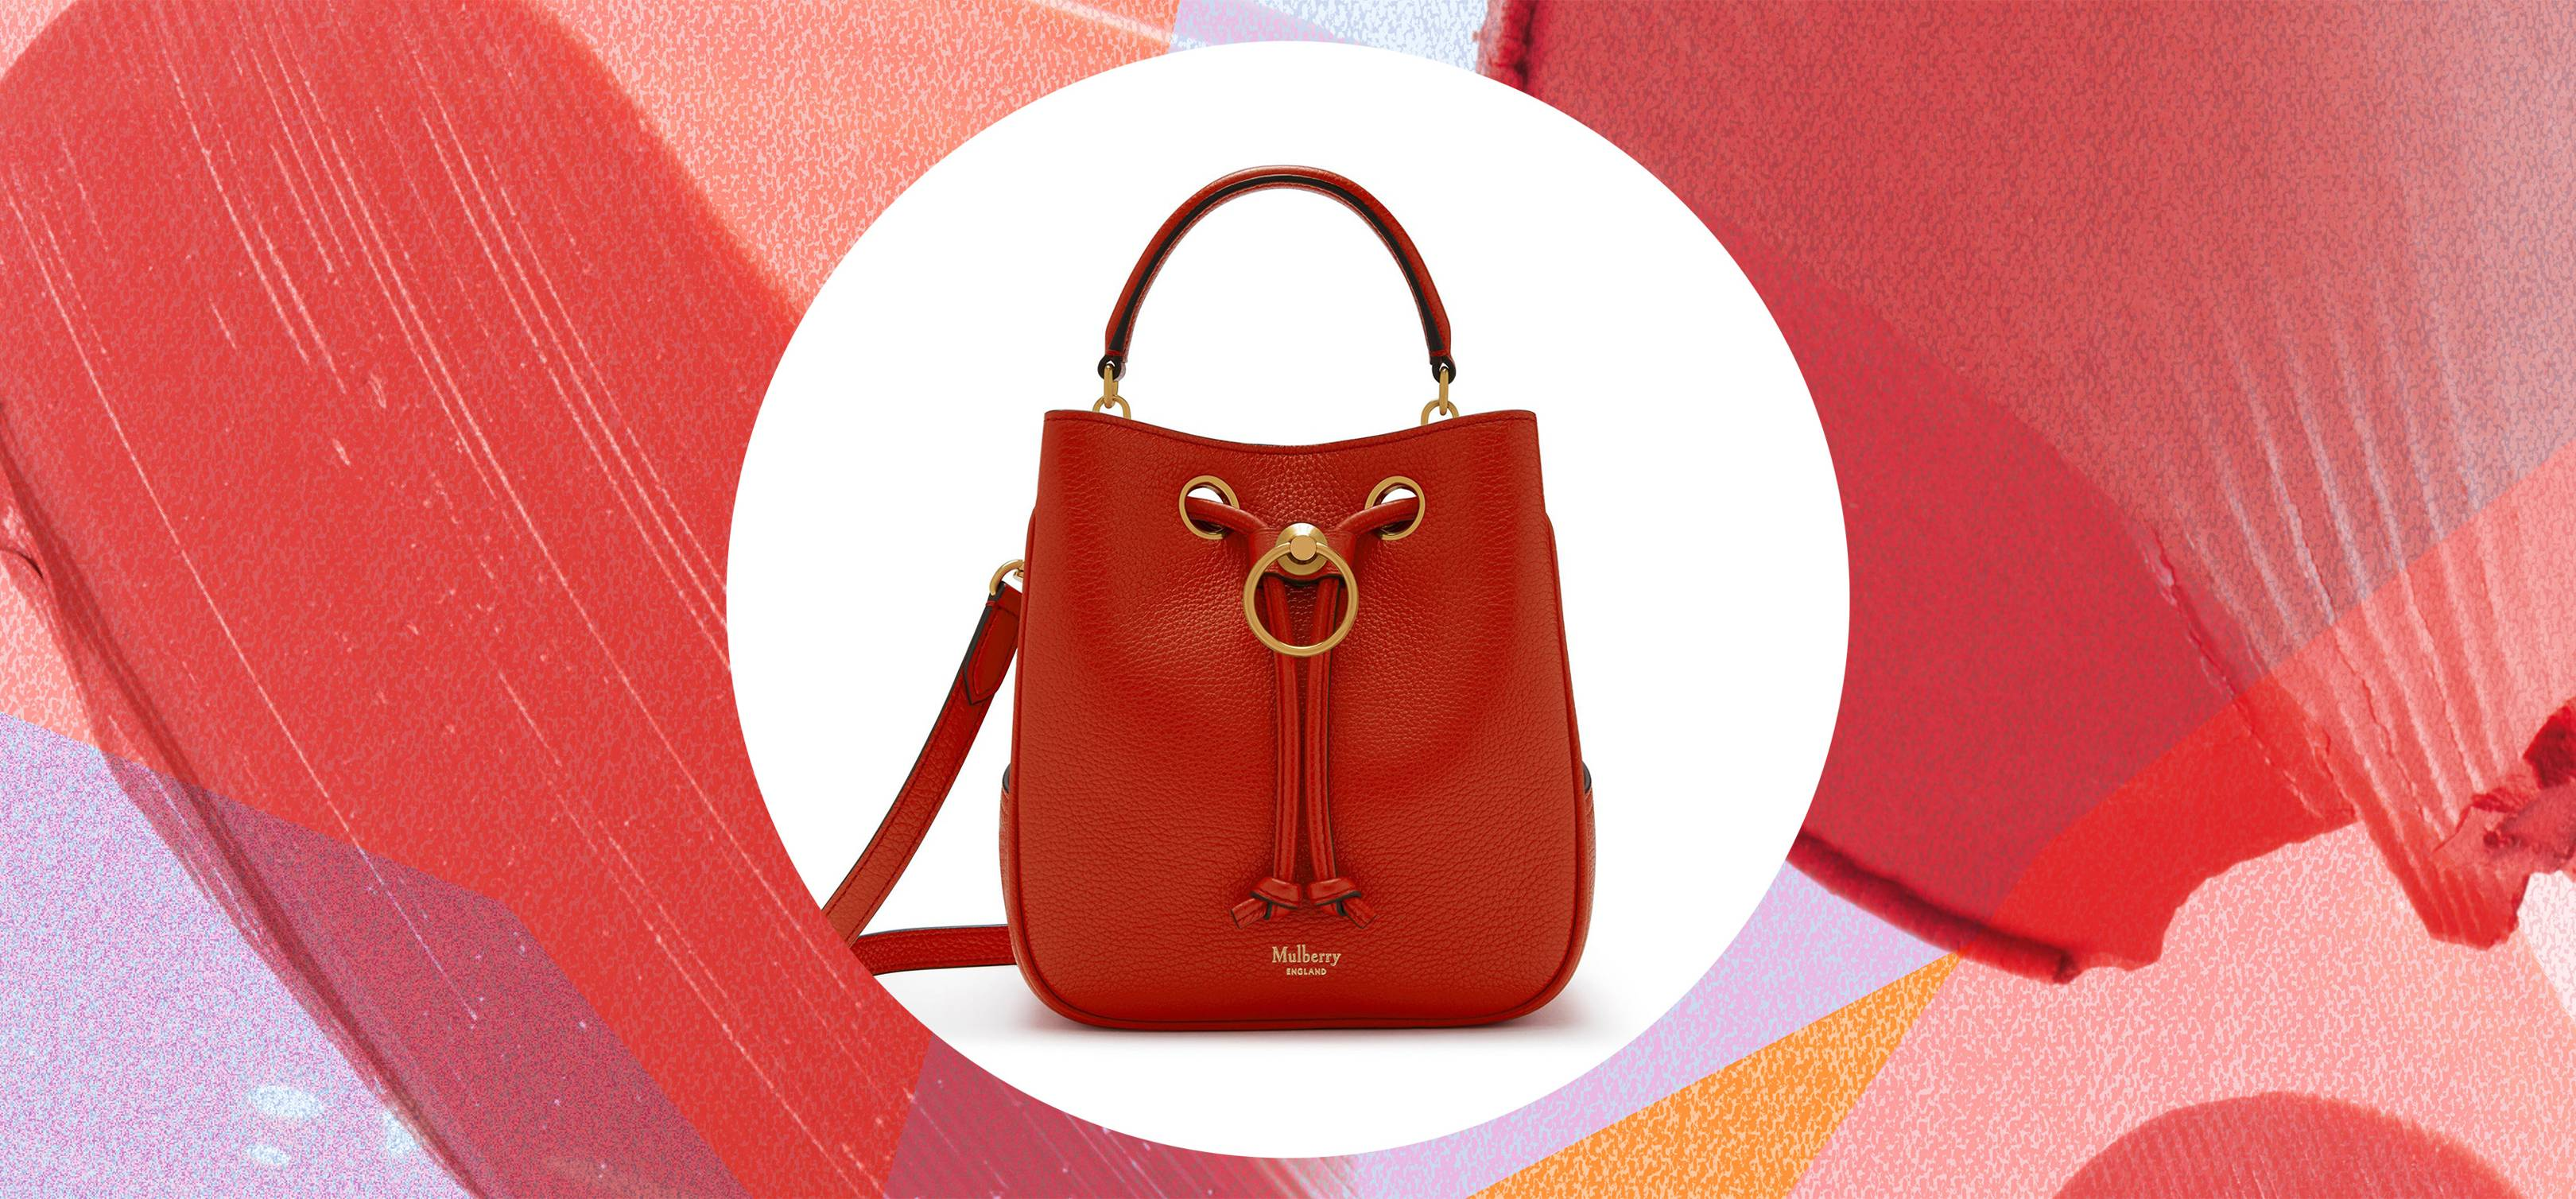 ab777effe94 The Mulberry Hampstead Handbag Will Be Going Right To The Top Of Your  Wishlist | Glamour UK